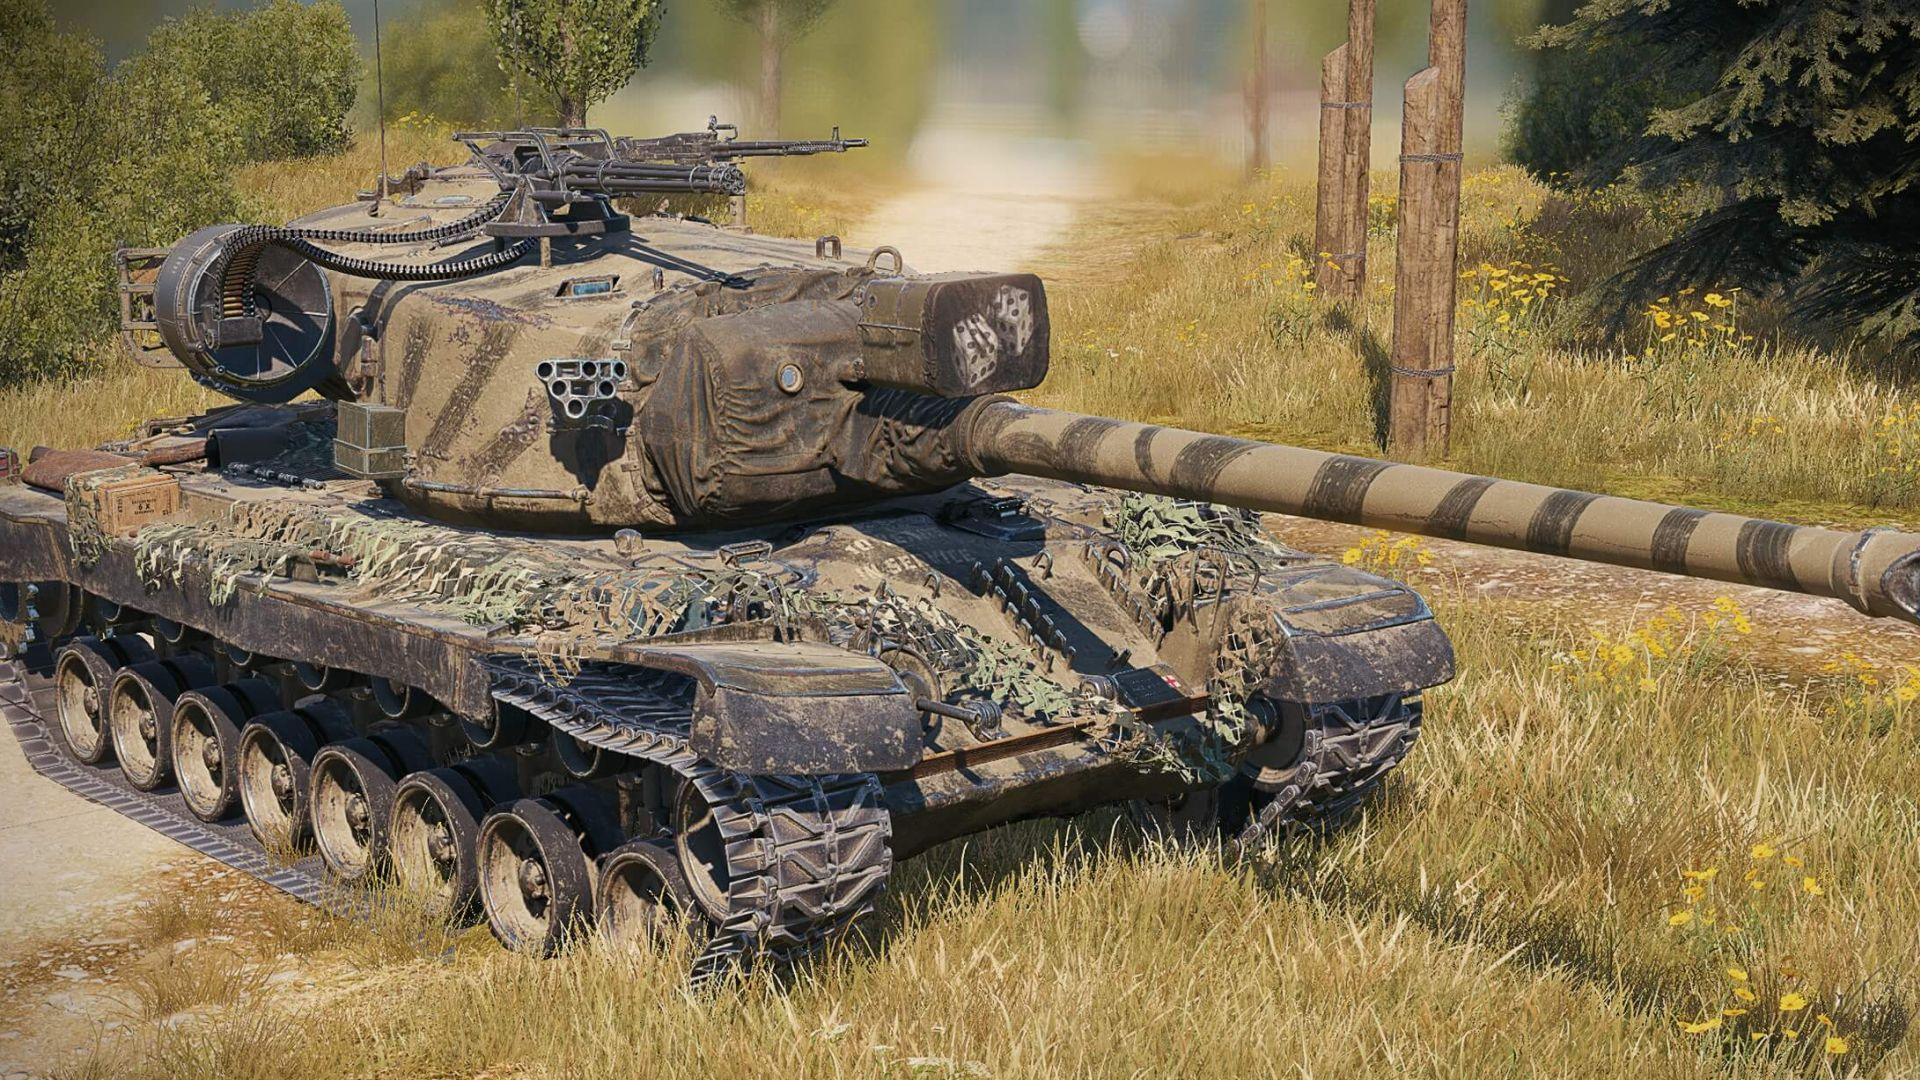 Military MMO World of Tanks has come to Steam